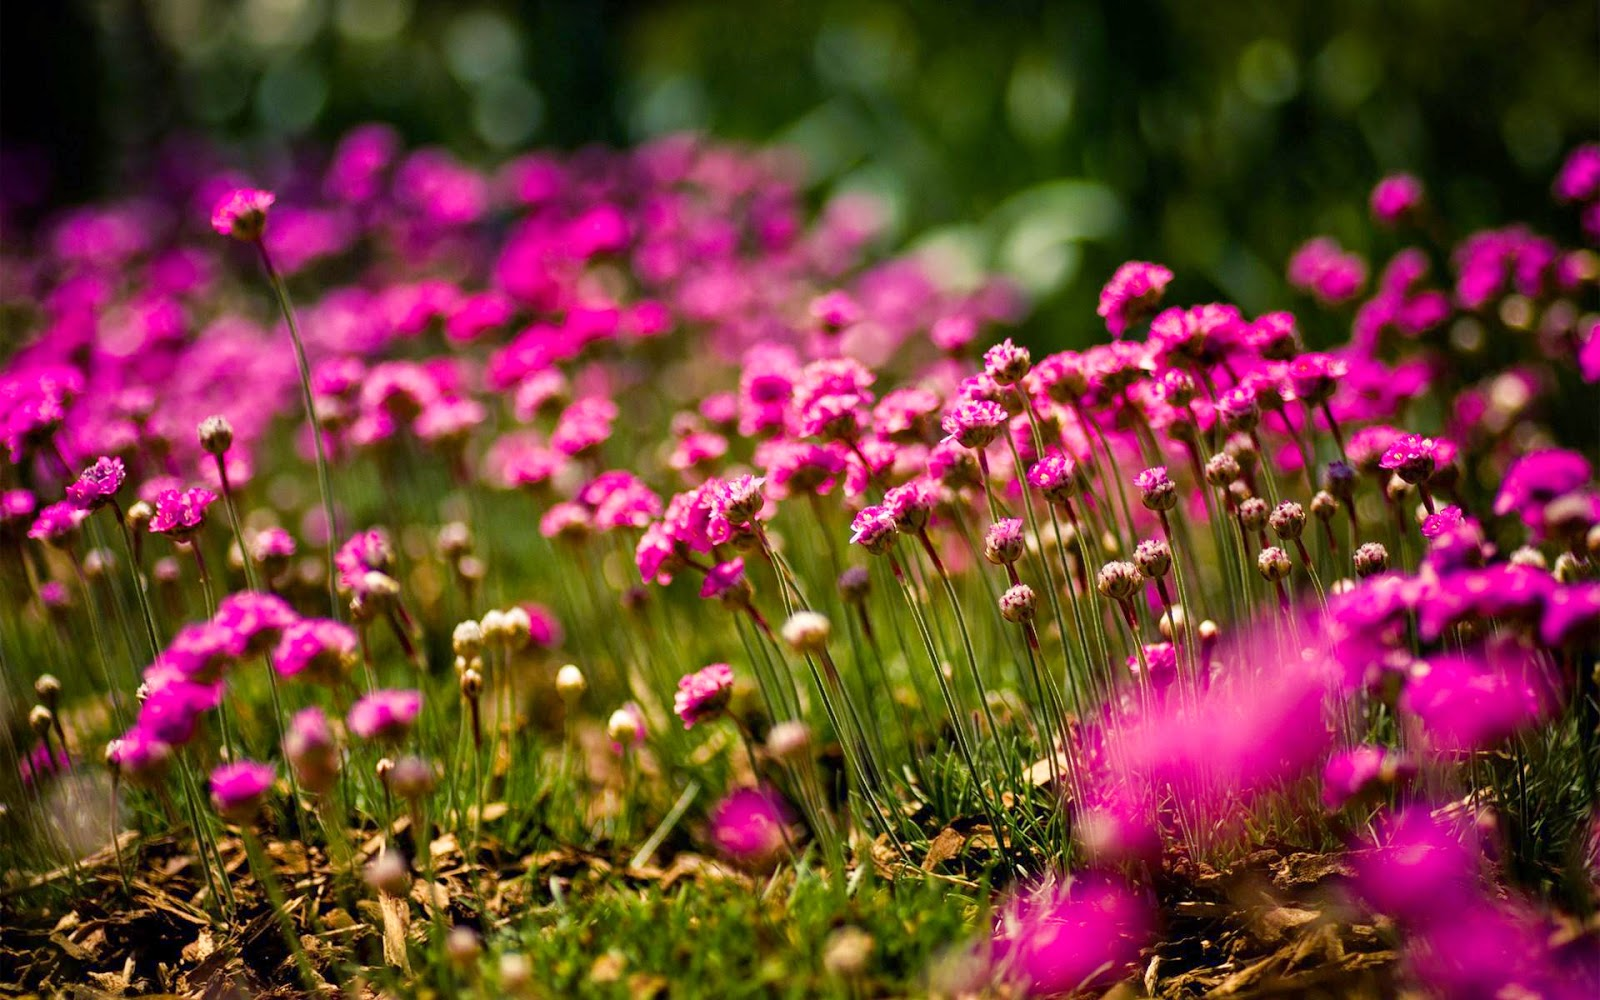 Sunny Nature Flowers Field Wallpapers